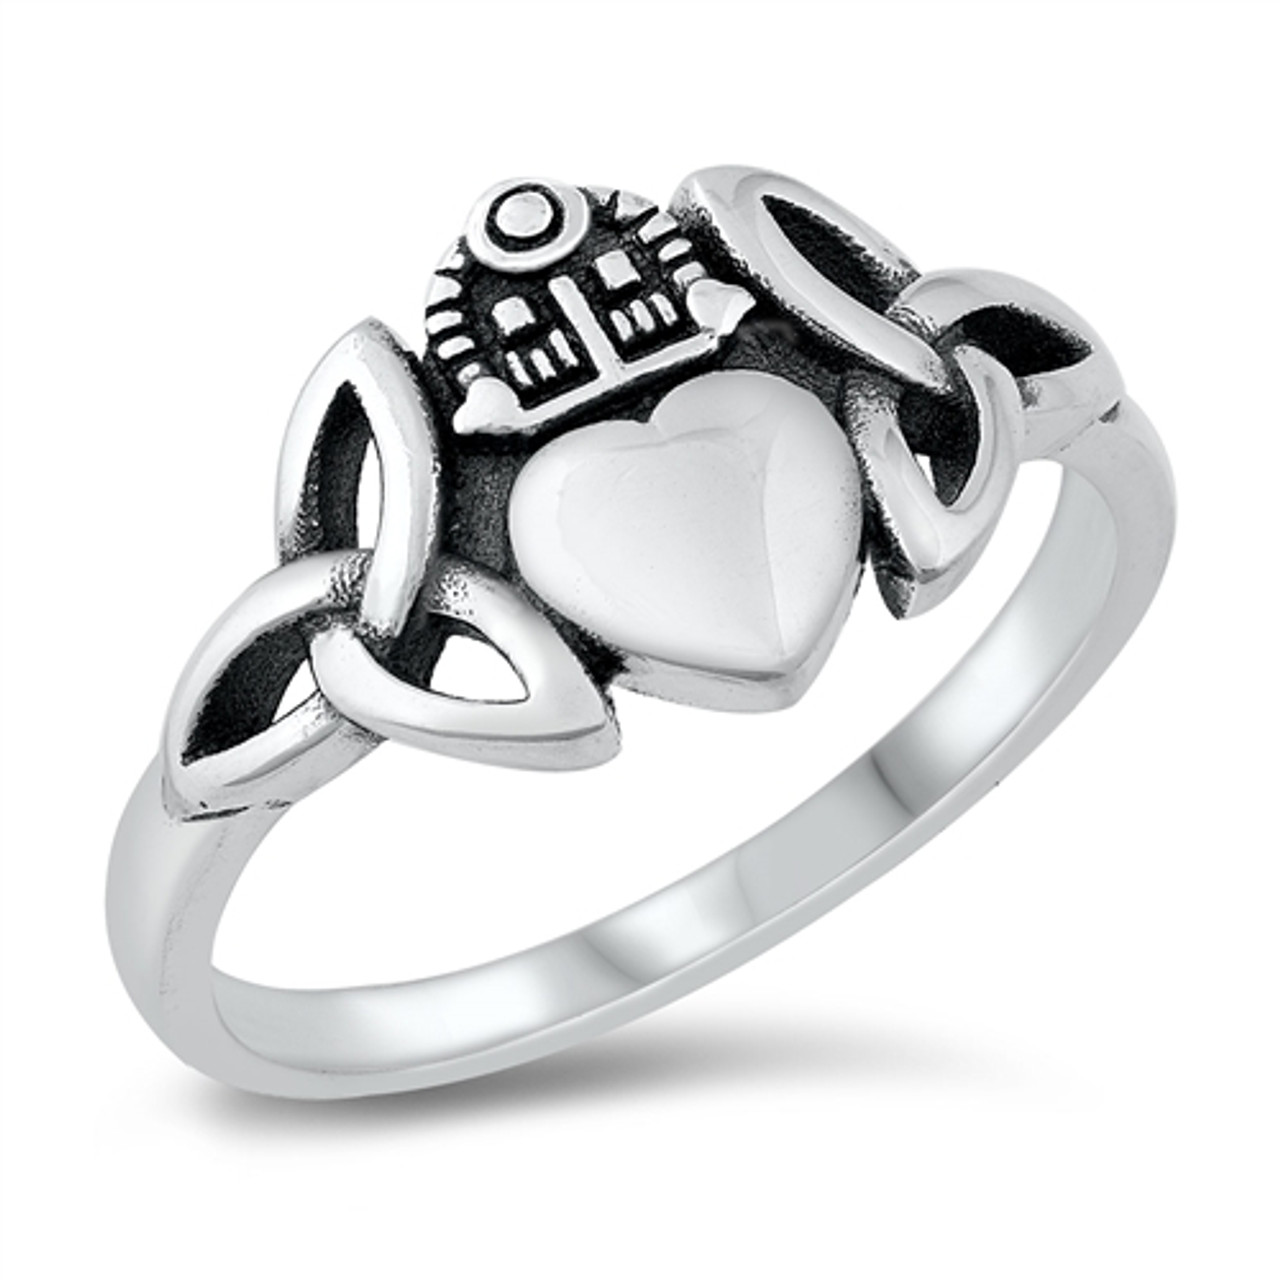 Heart Hands Ring Genuine Sterling Silver 925 High Polish Gift Face Height 7 mm